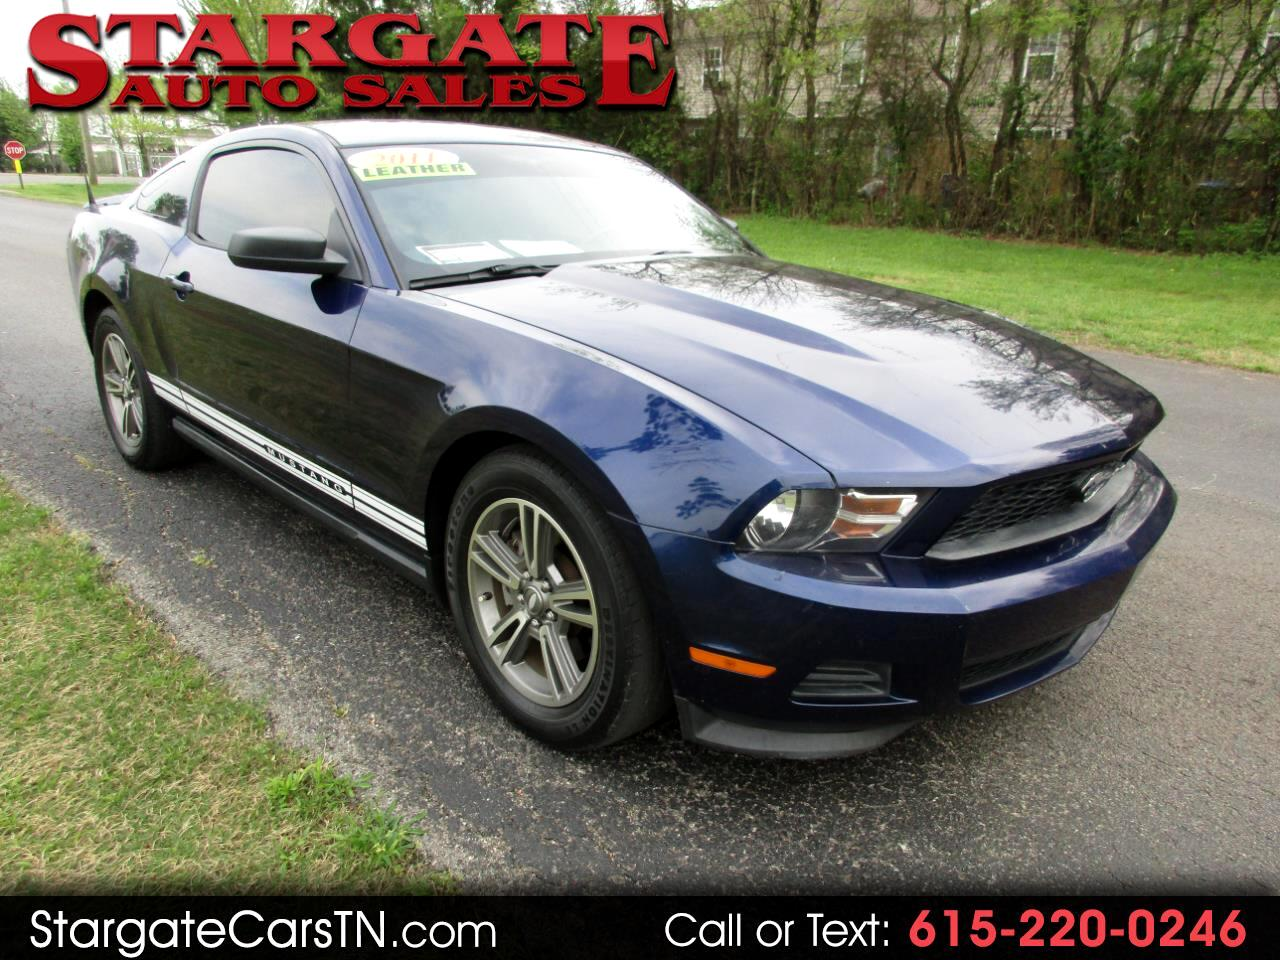 2011 Ford Mustang 2dr Cpe V6 Premium